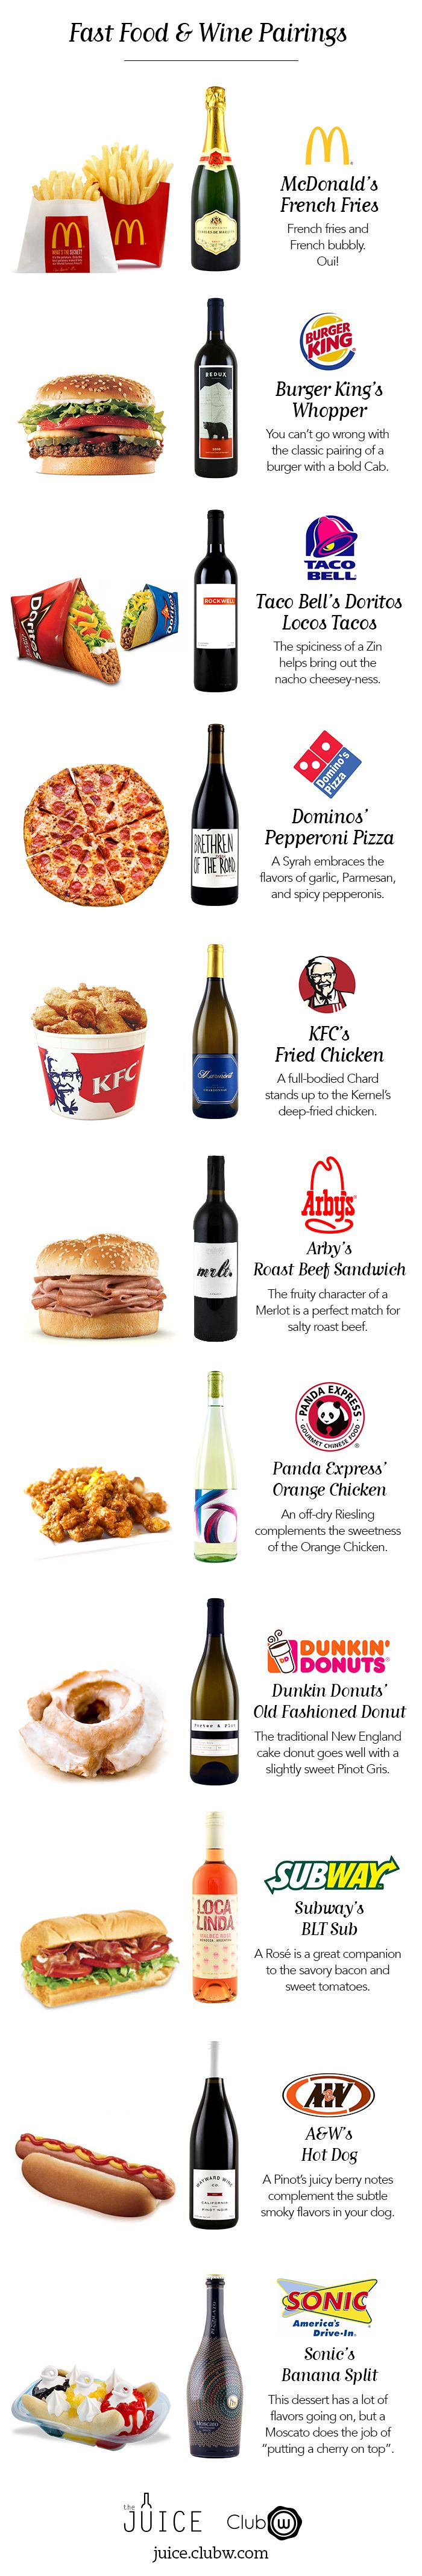 Wine Pairing Guide: Fast Food - The Juice | Club W I'm sure I'll try some of these pairings!  LOL!